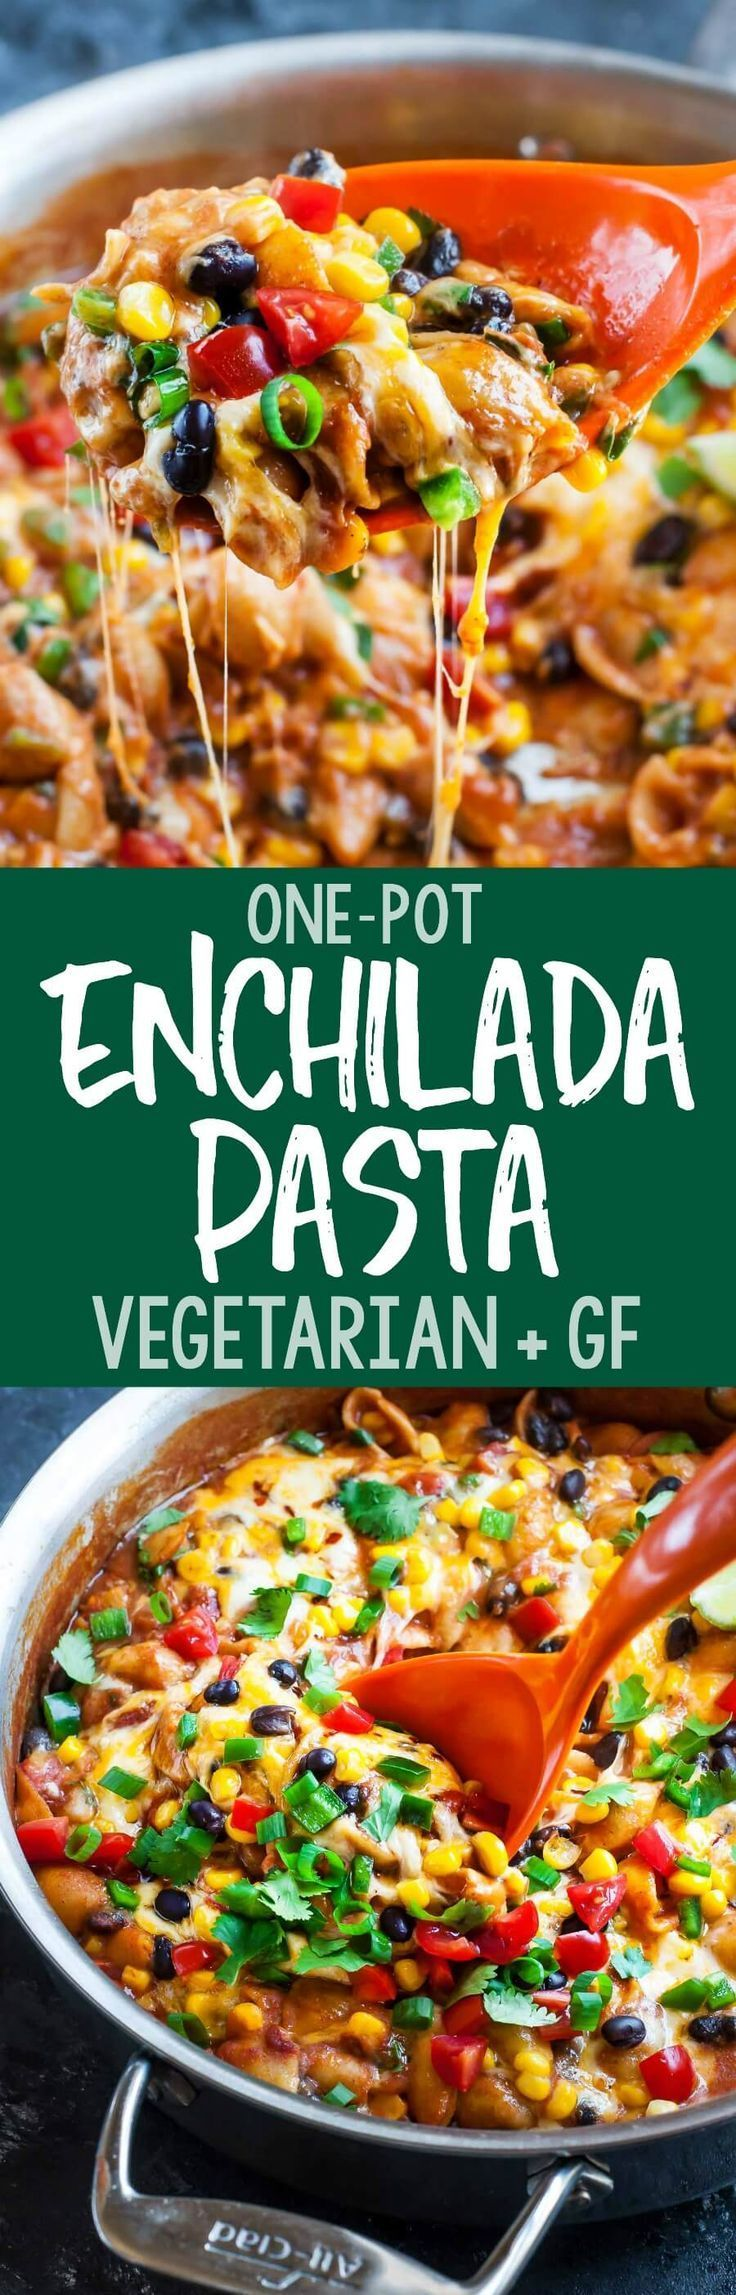 Healthy Gluten-Free One-Pot Enchilada Pasta - this tasty vegetarian dish is quick, easy, and ready to rock your plate!